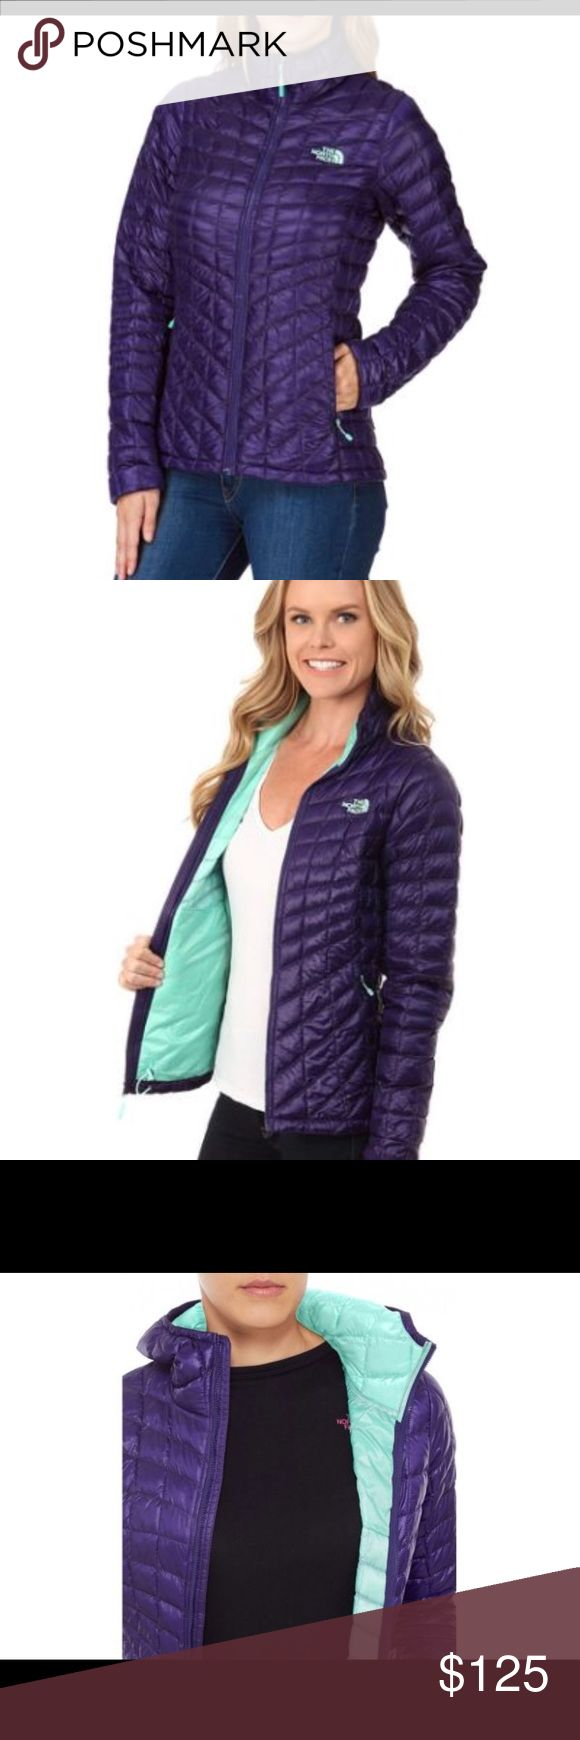 The North Face Thermoball jacket Gorgeous garnet/turquoise North Face Thermoball jacket. Excellent condition and such a great staple piece. Hoodless version. The North Face Jackets & Coats